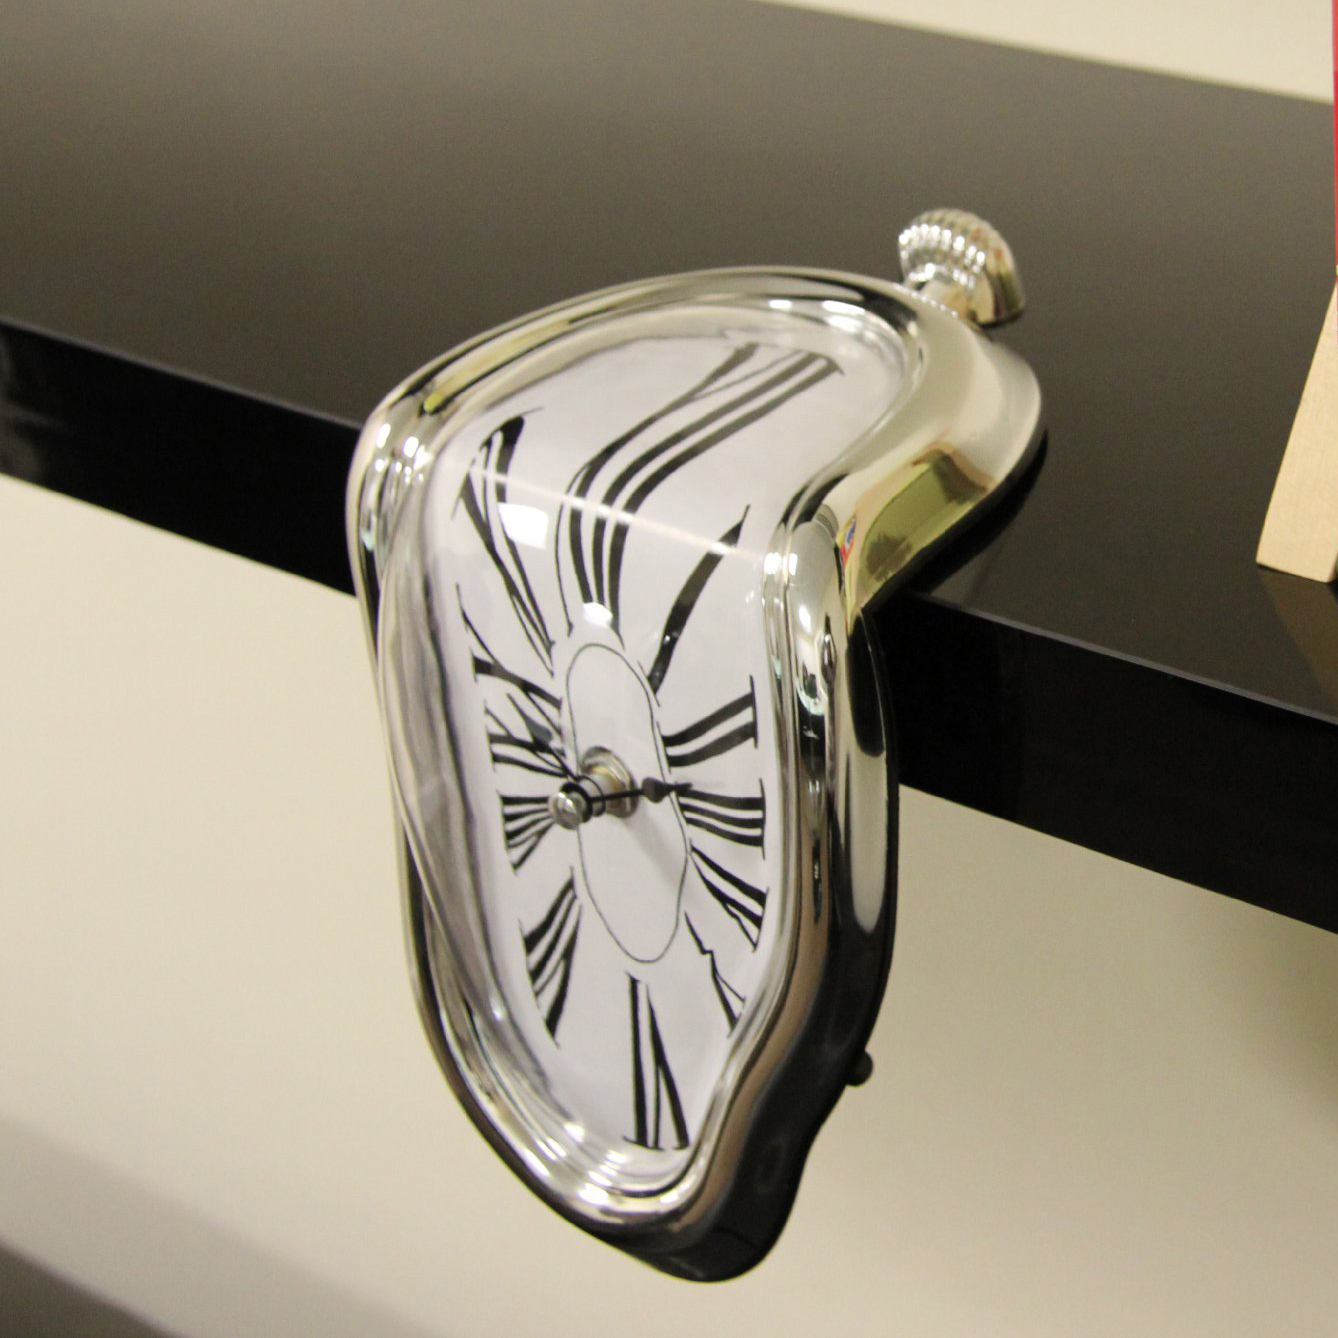 Unusual Clocks Salvador Dali Style Melting Wall Clock Kitchen Home